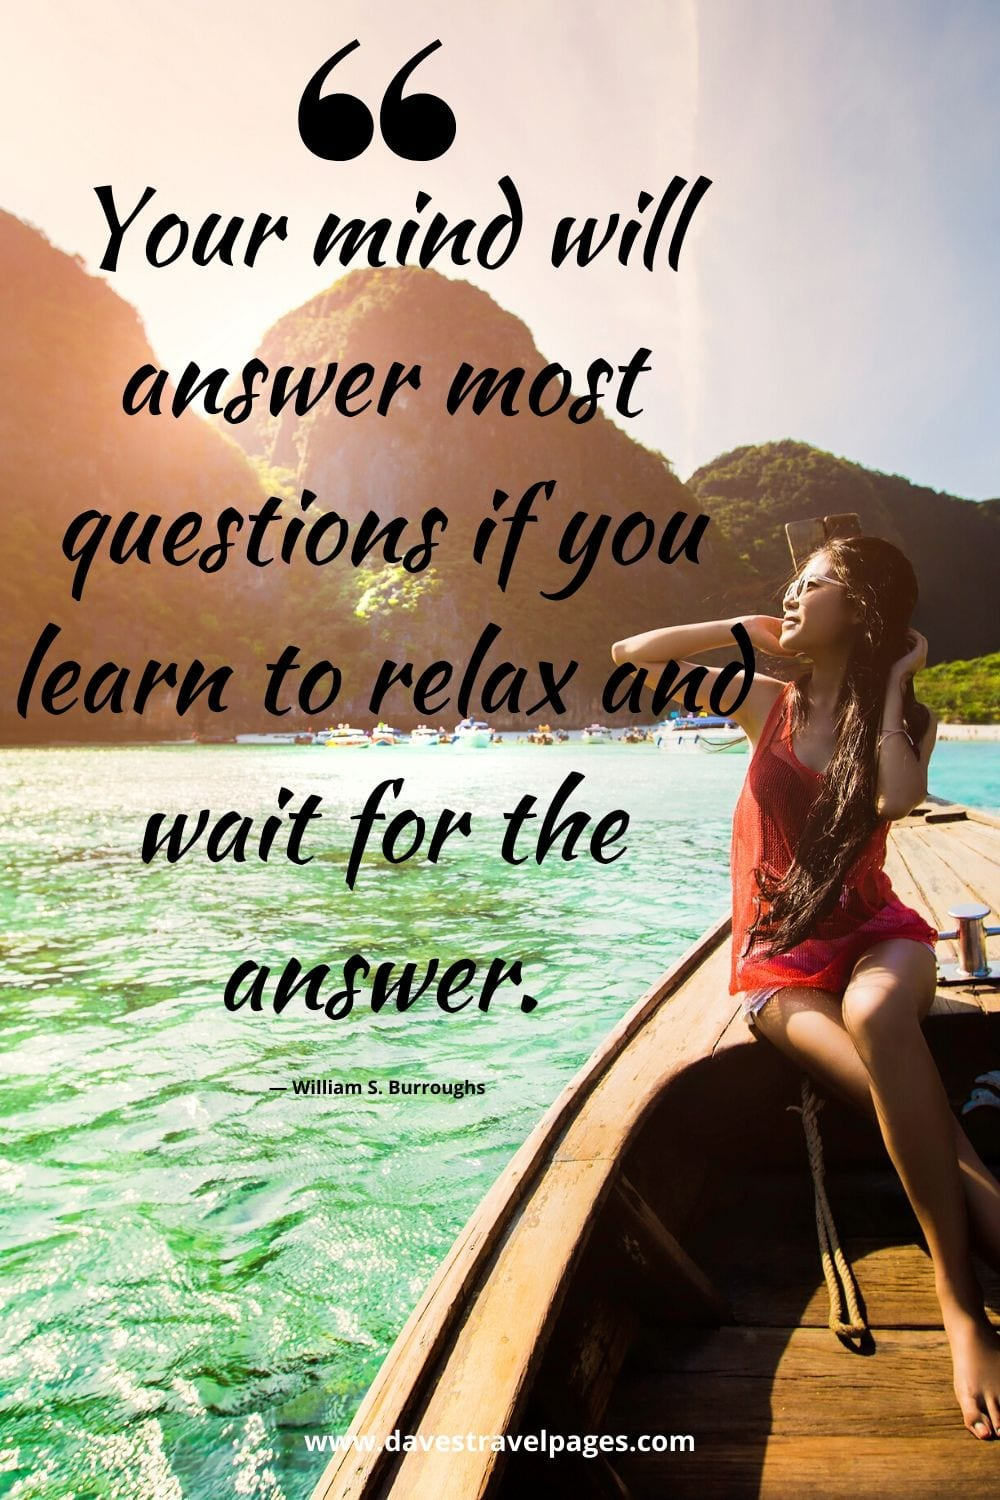 """Inspiring quotes in travel - """"Your mind will answer most questions if you learn to relax and wait for the answer."""" — William S. Burroughs"""